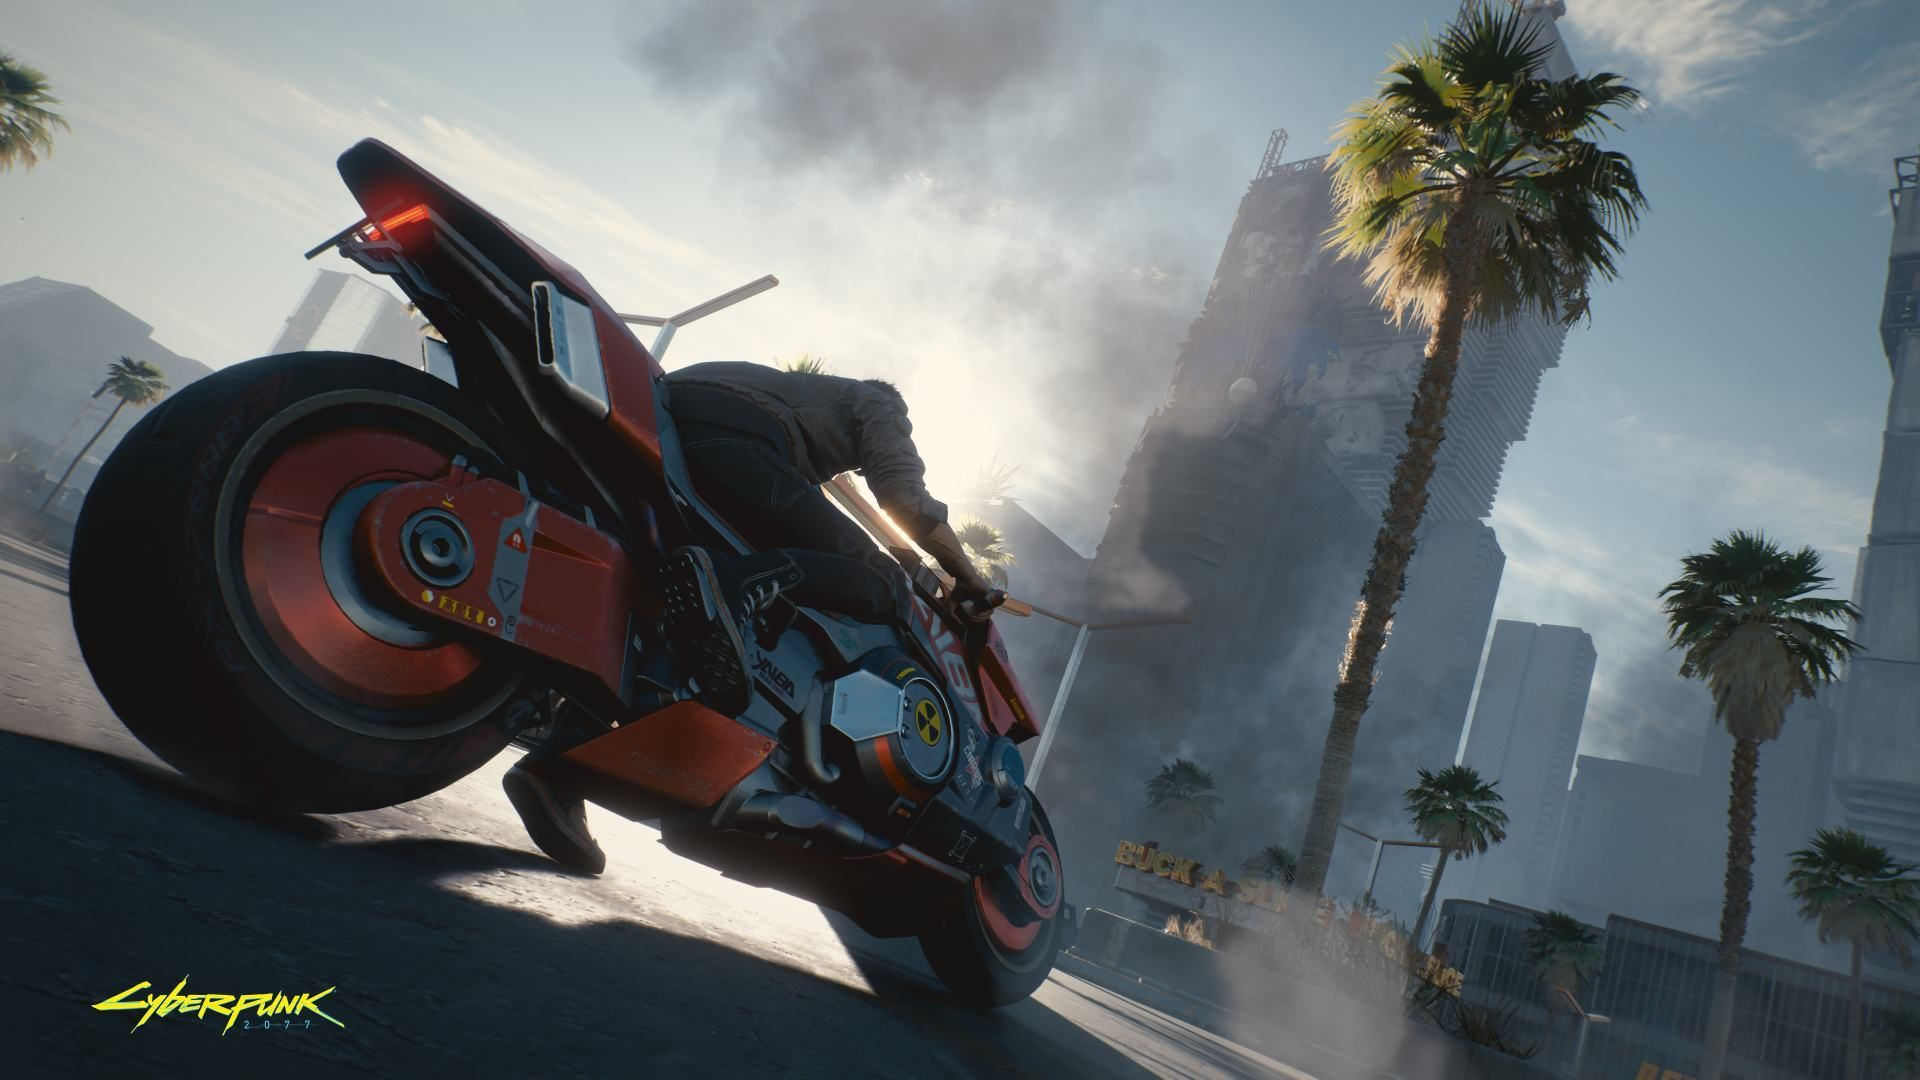 Best games of 2020: Your complete release schedule for PlayStation, Xbox, Nintendo Switch and beyond